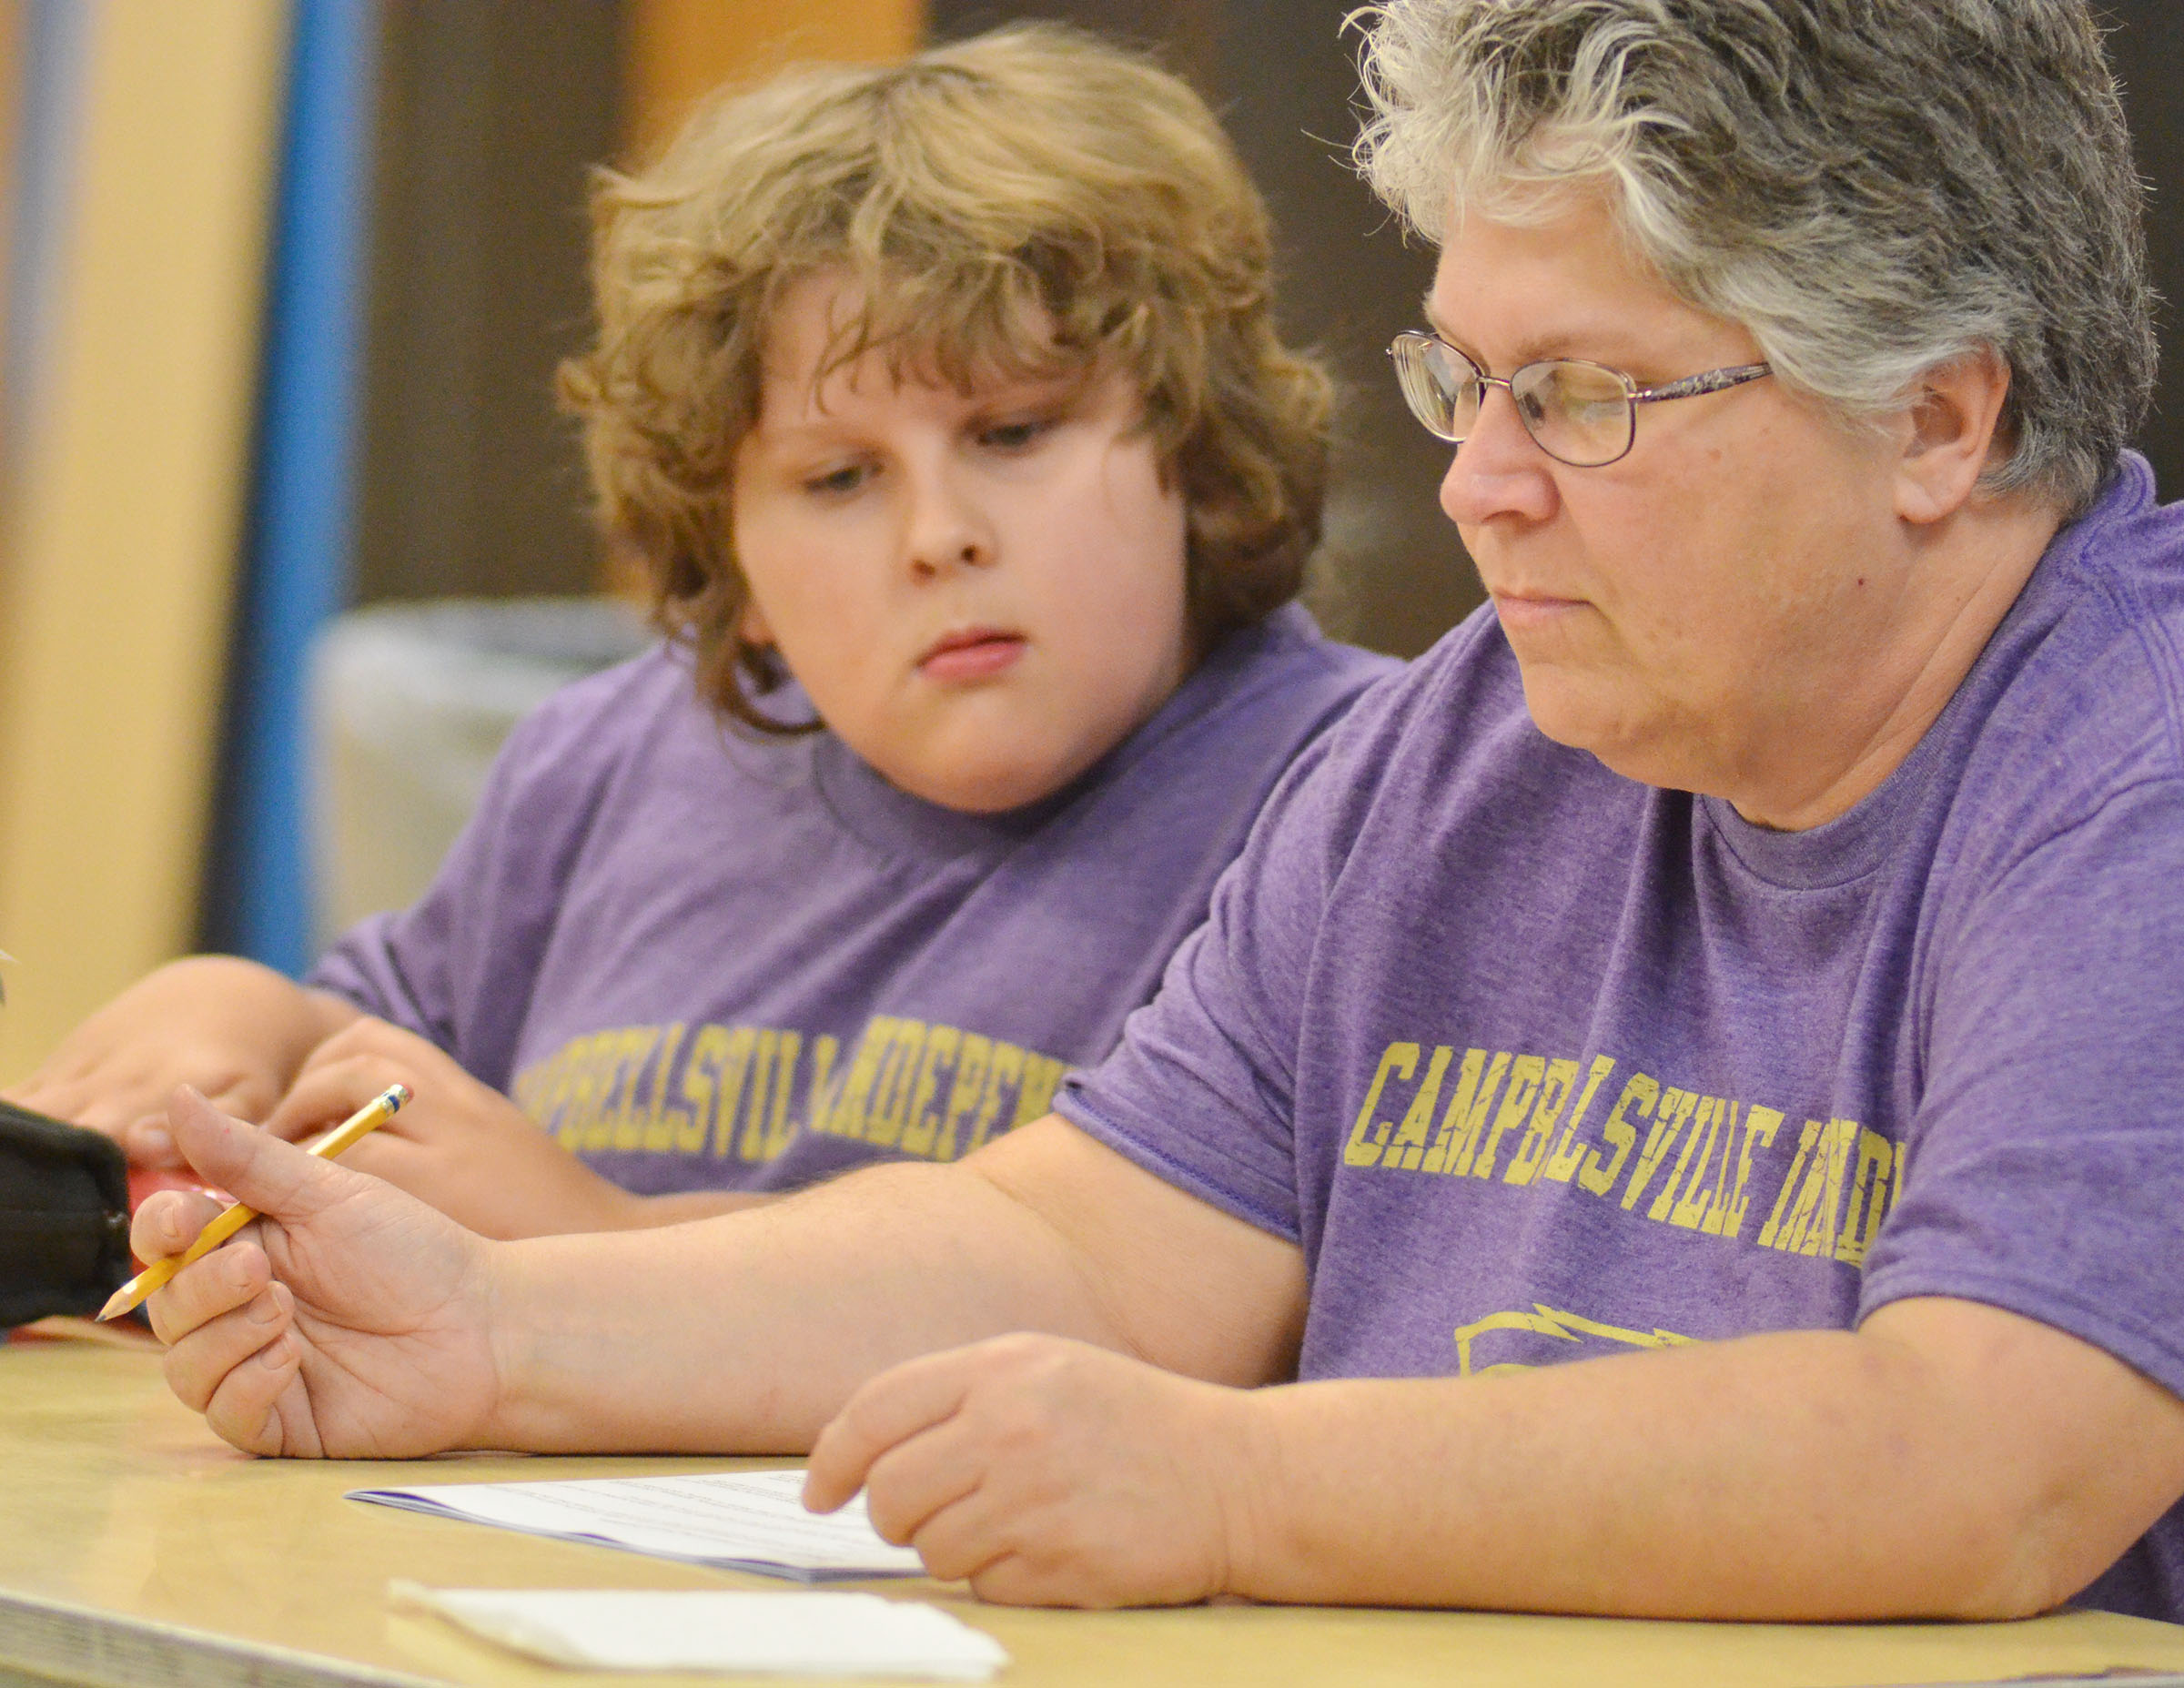 CHS academic team coach Jo Ann Harris reviews quick recall questions as her son, Zeke, a fourth-grader at Campbellsville Middle School, looks on.